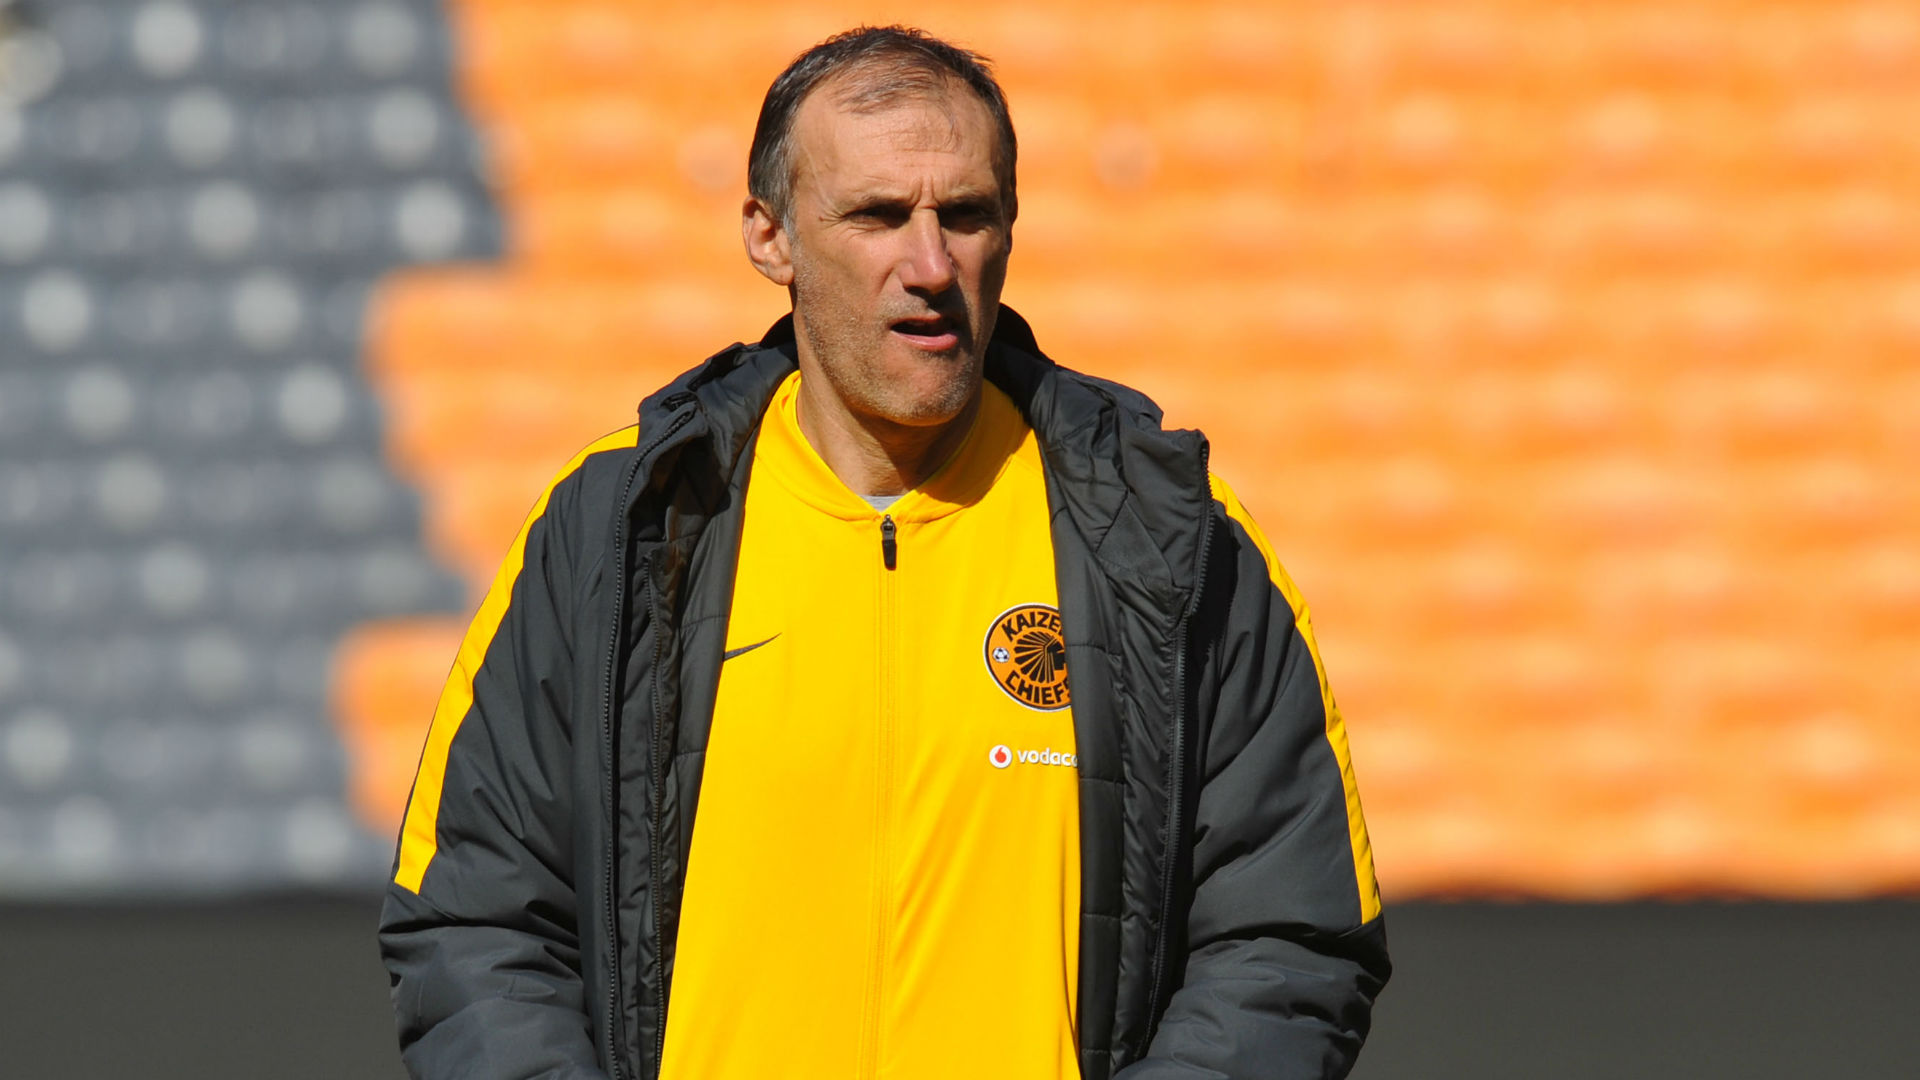 Giovanni Solinas, Kaizer Chiefs, July 2018